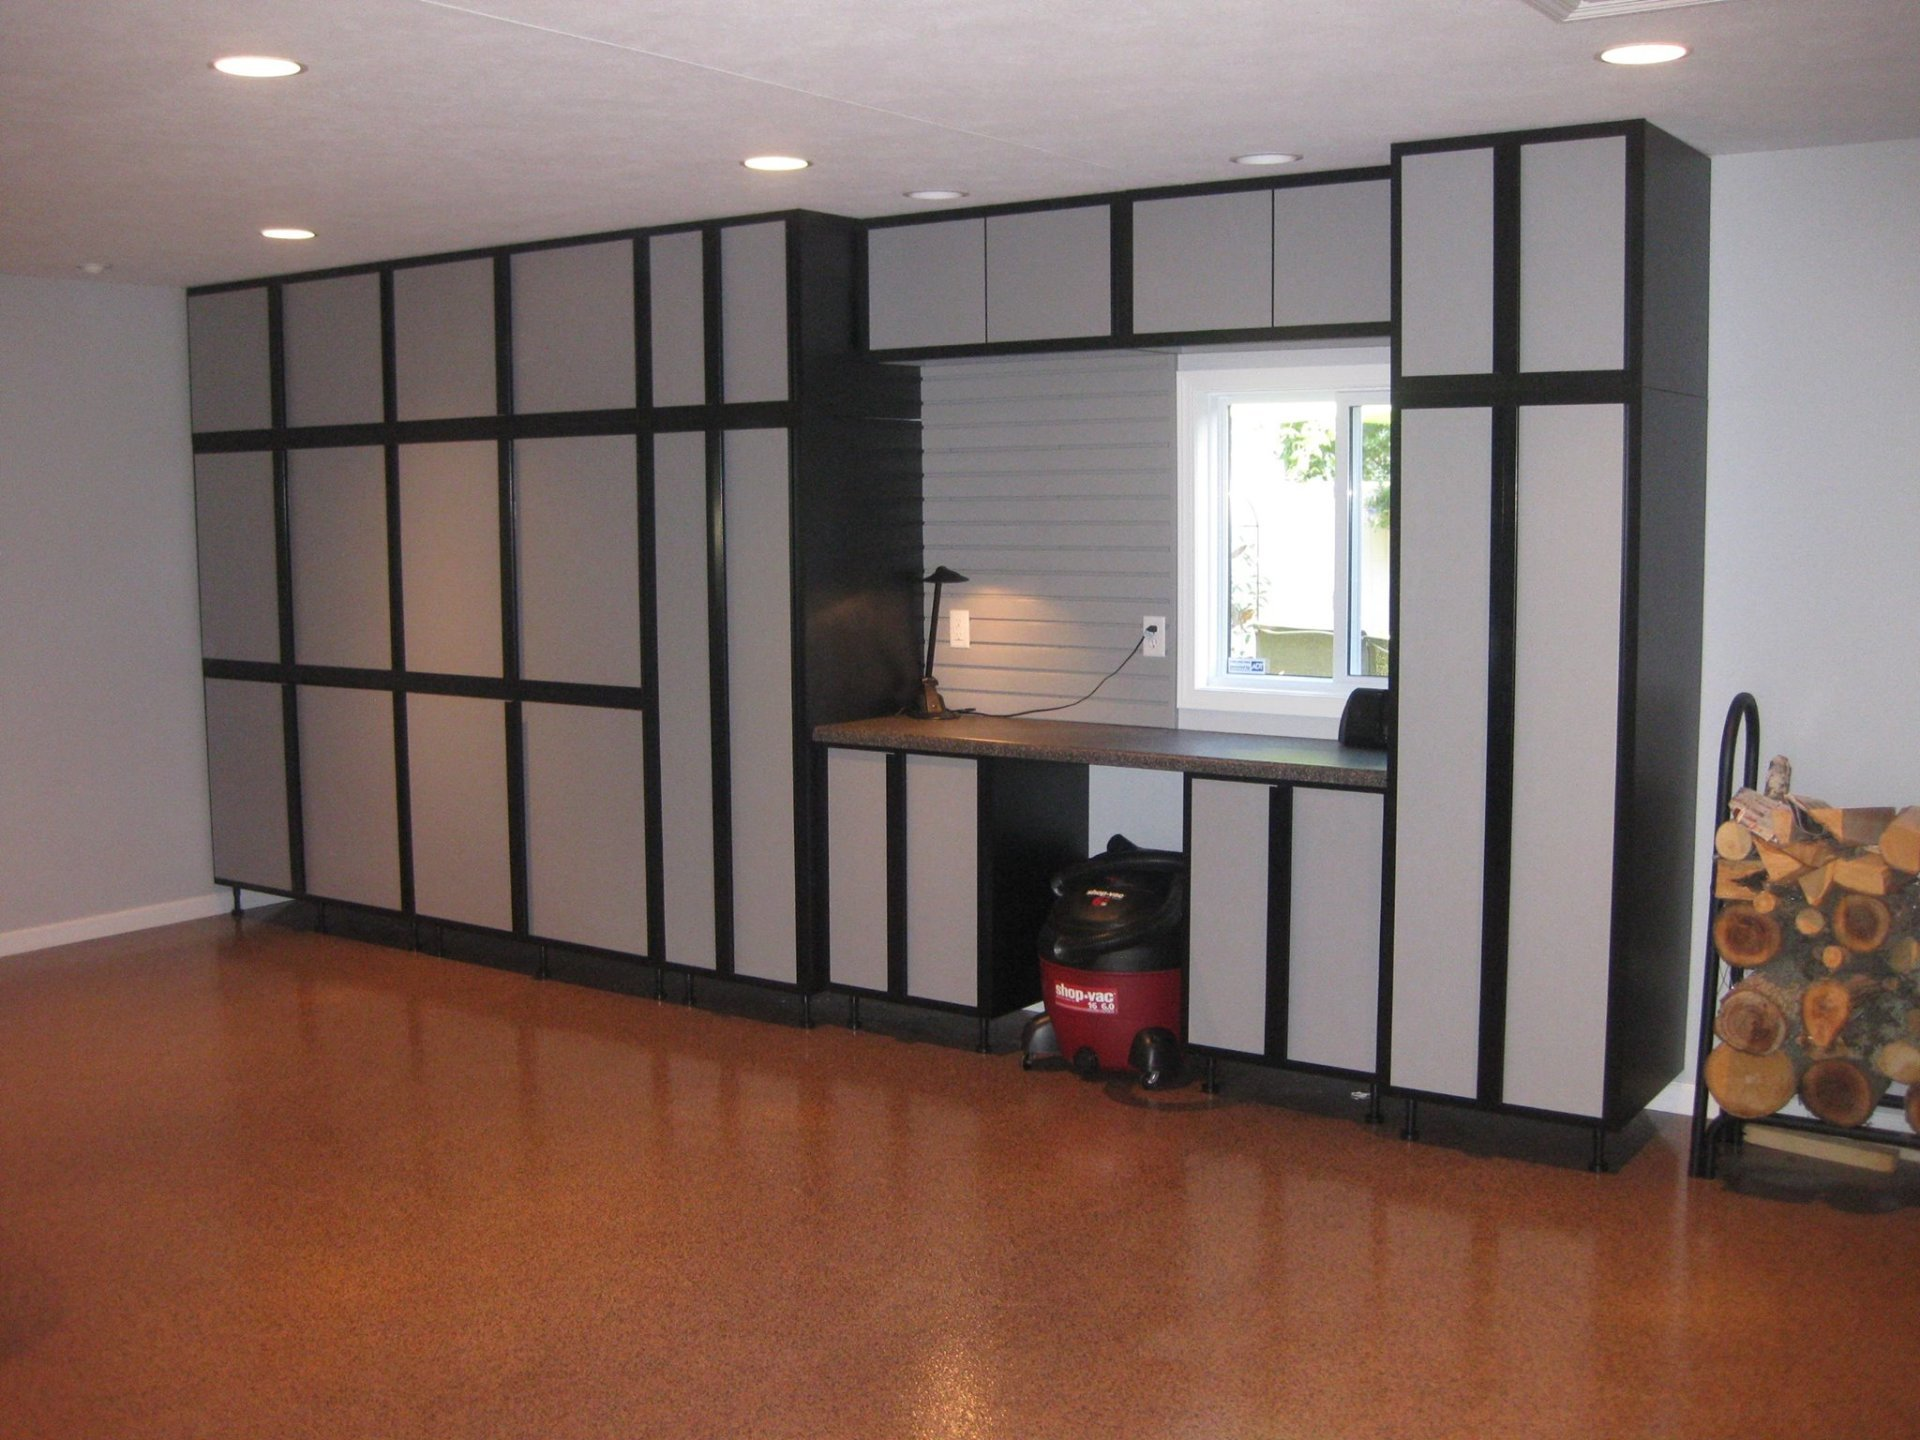 West Michigan Garage Interiors Llc Expert Floor Coating